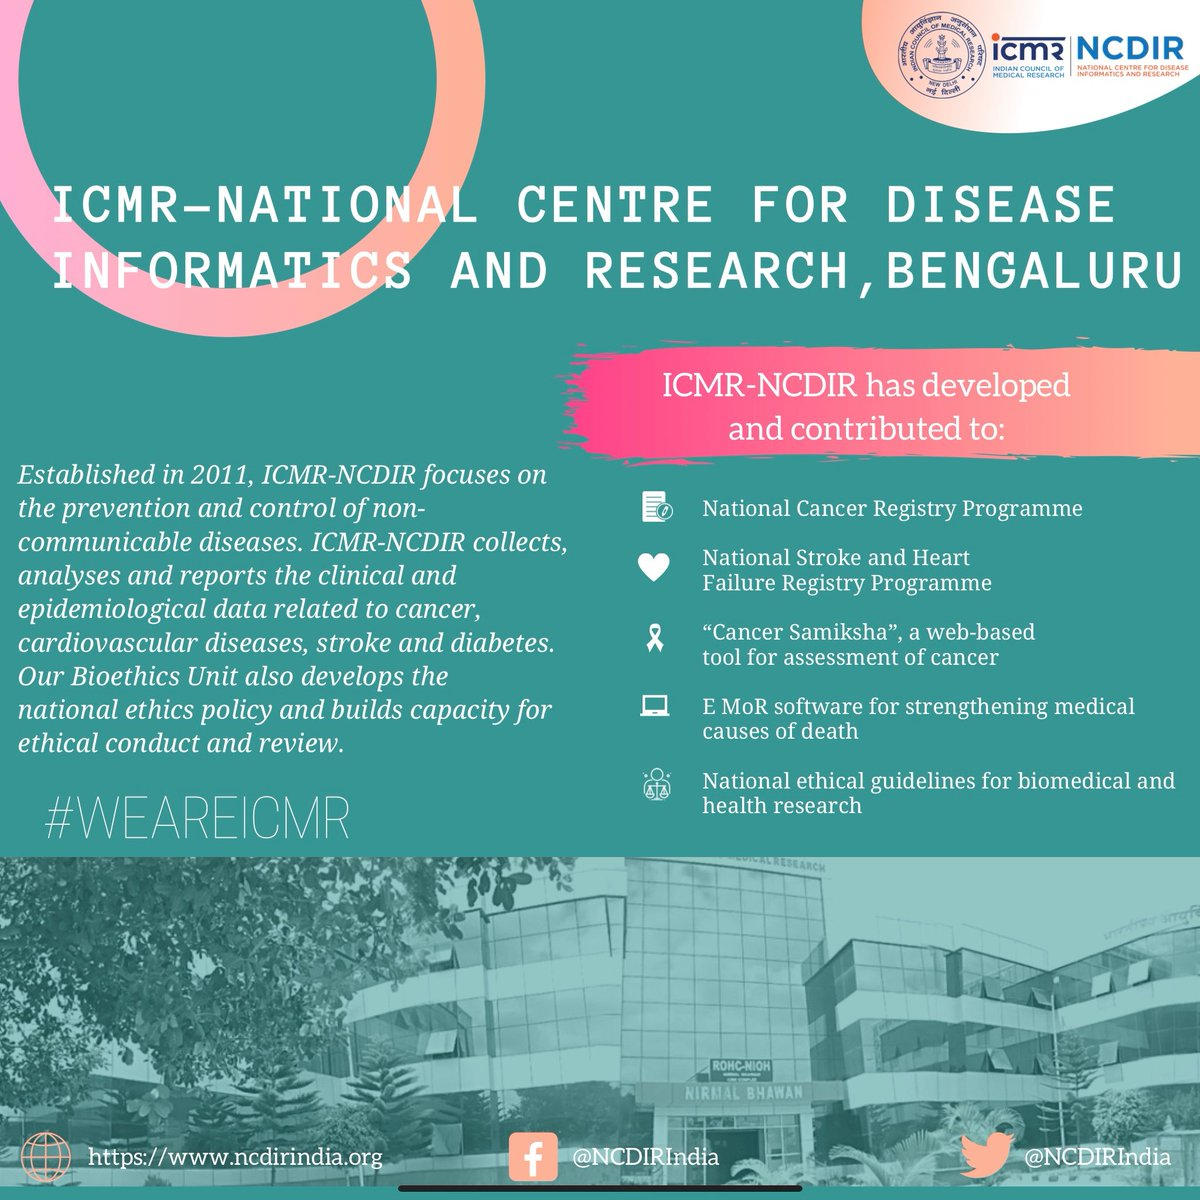 test Twitter Media - ICMR-NCDIR collects, analyses and reports data on non-communicable diseases like cancer and diabetes. To know more about us, visit https://t.co/Xzm91GA8GZ. #WeAreICMR @NCDIRIndia @MoHFW_INDIA @DeptHealthRes @GoI_MeitY #CancerResearch #diabetes https://t.co/YsdRjWsWZB